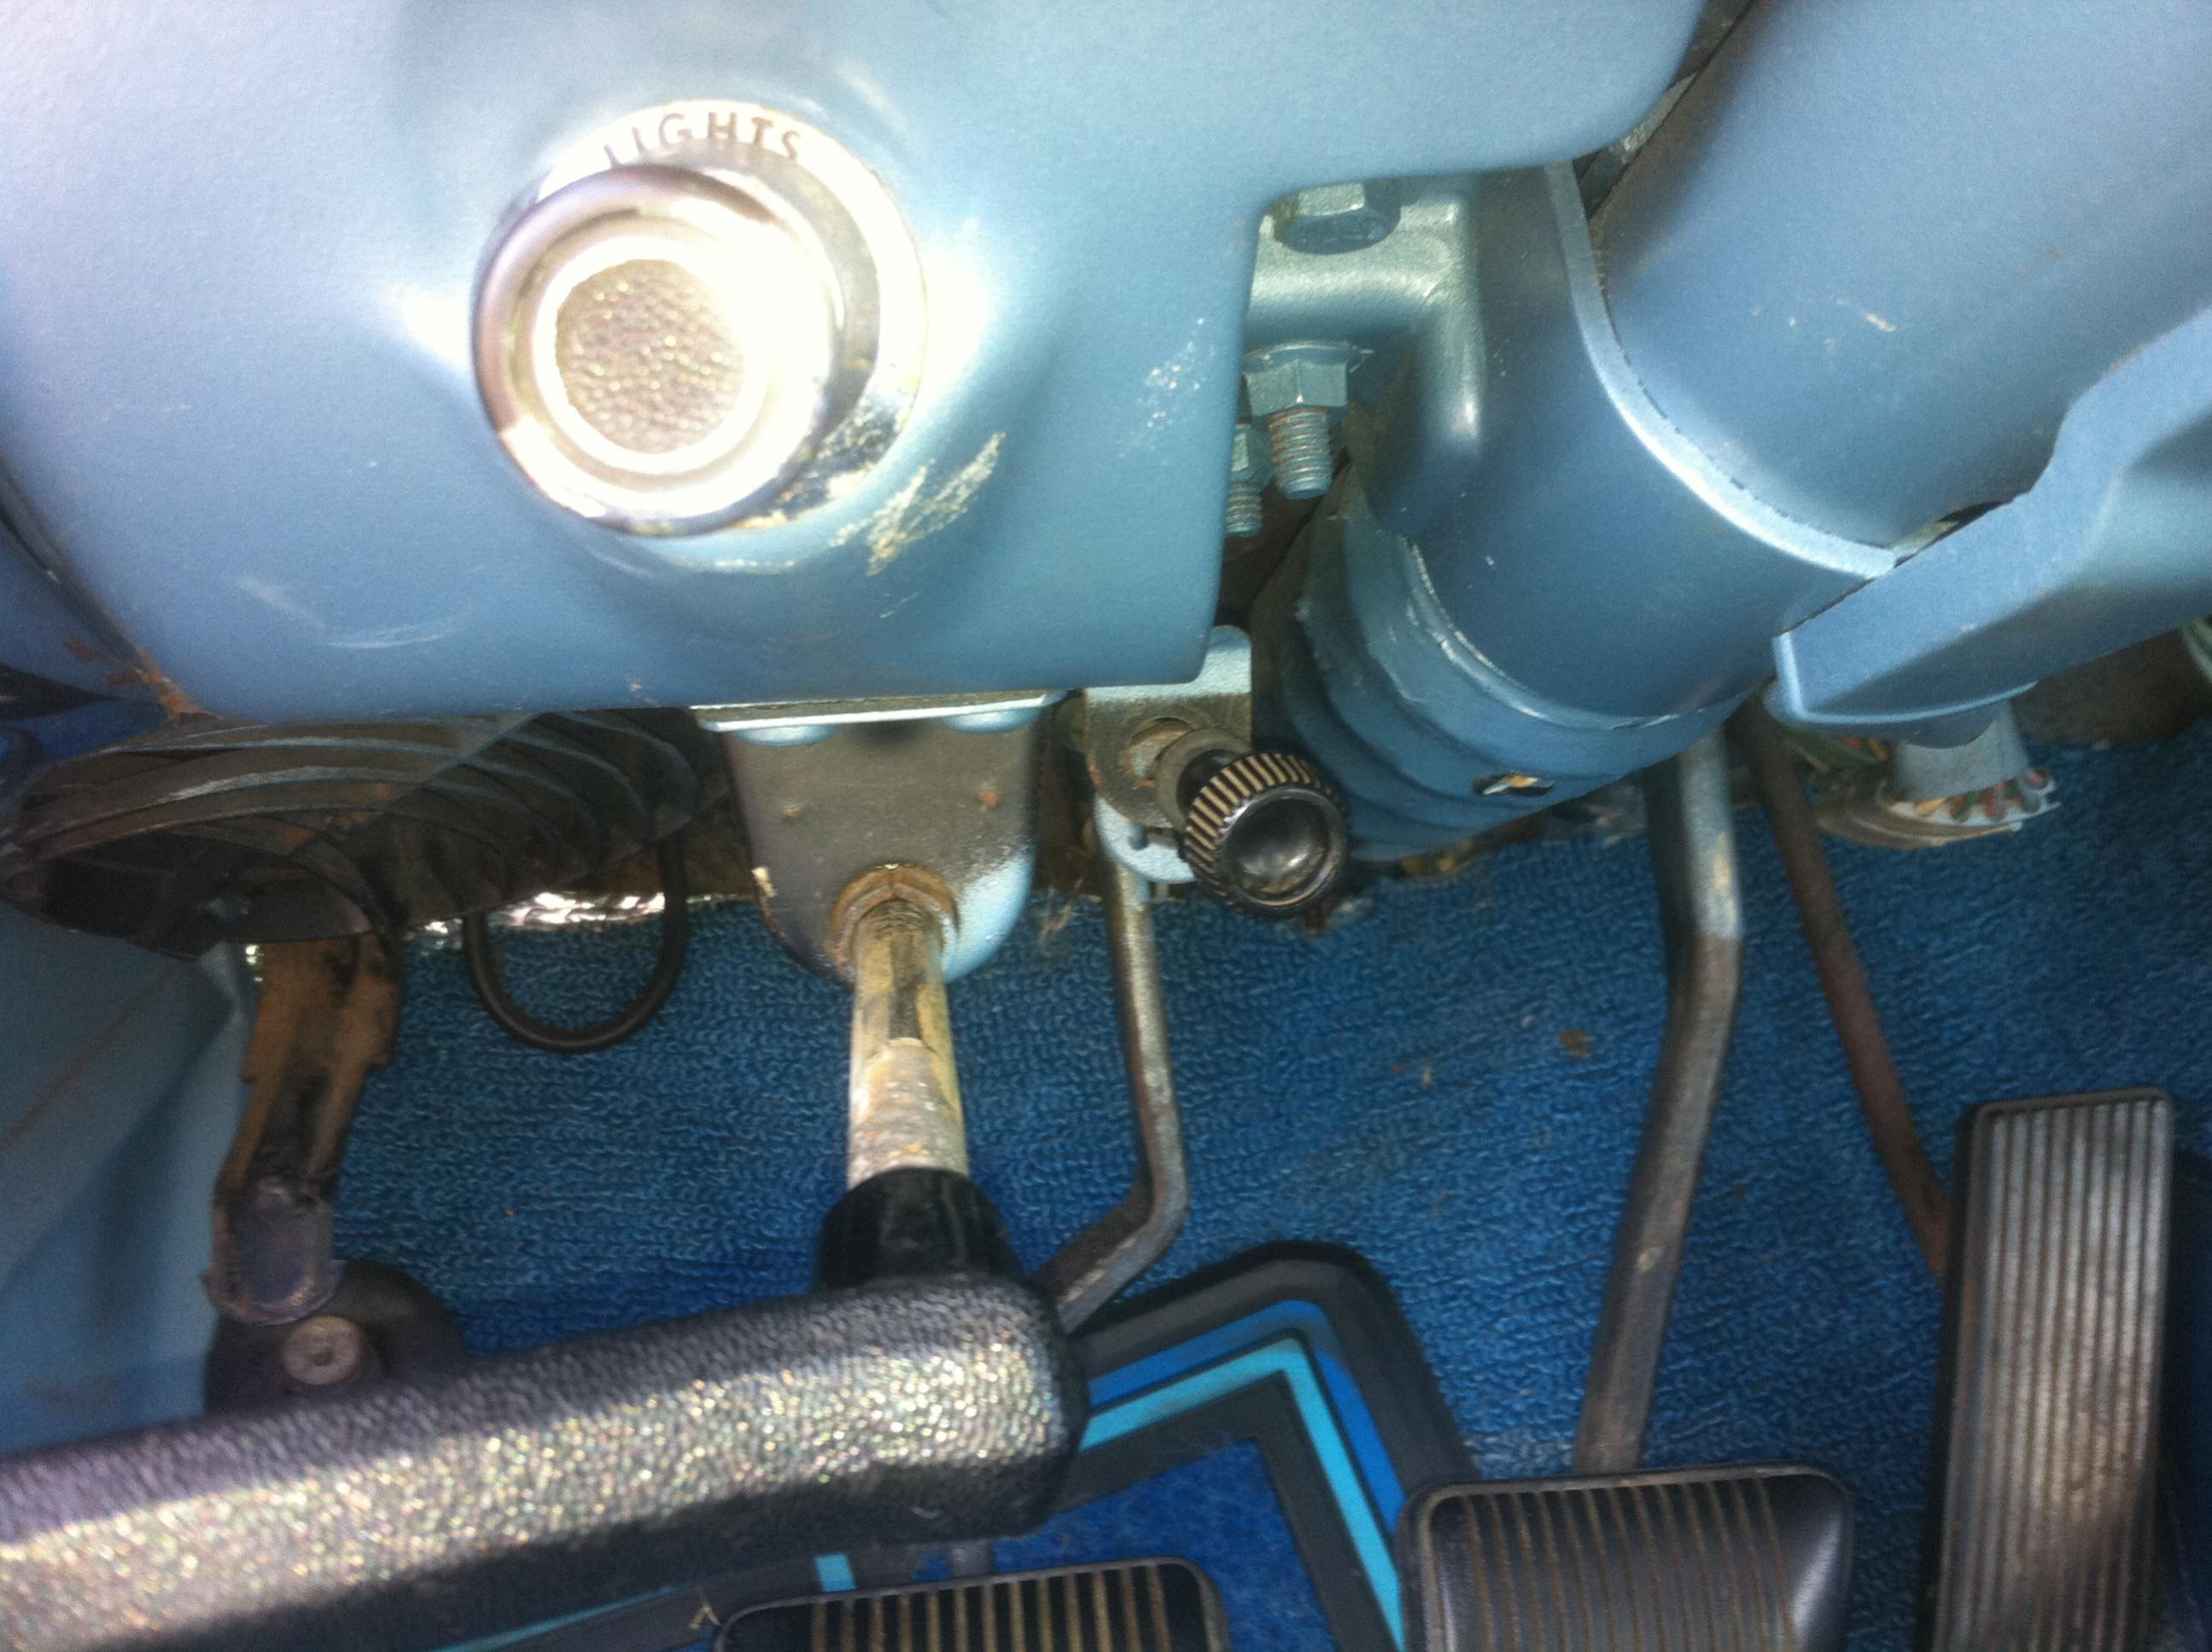 1968 Mustang 289. Some small problems. - Ford Mustang Forum